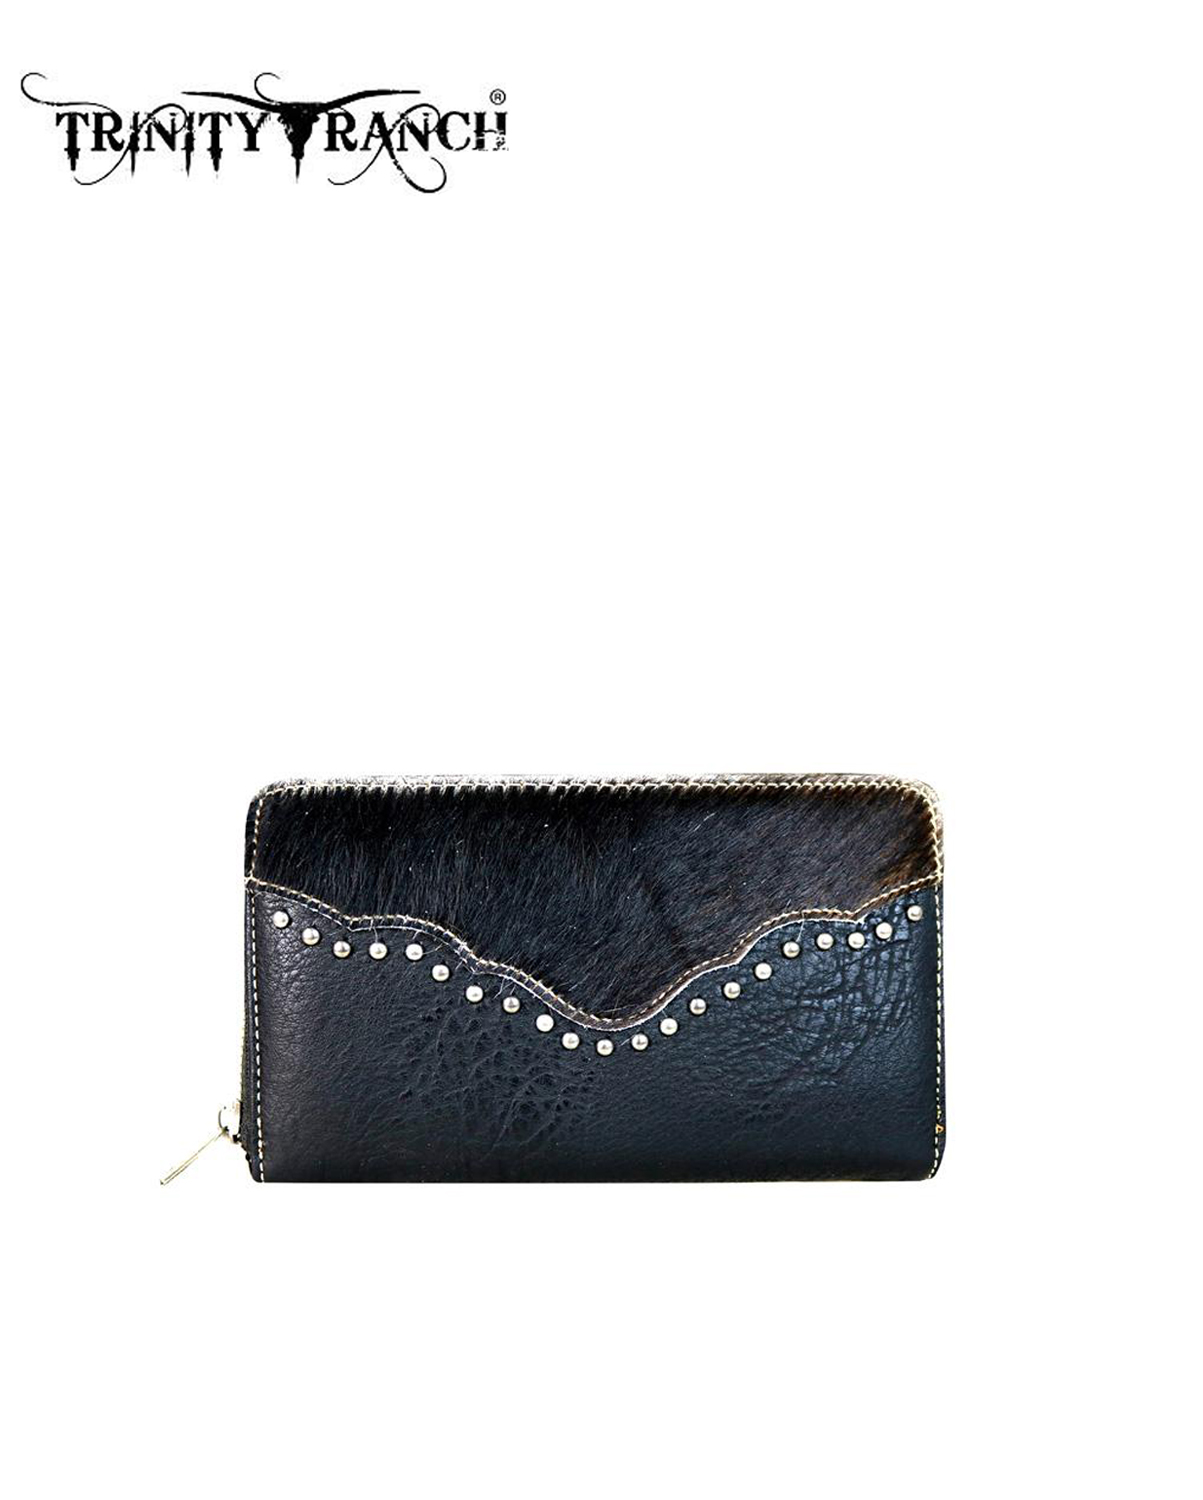 TR62W003(BK)-MW-wholesale-montana-west-wallet-trinity-ranch-hair-on-hide-leather-stud-rhinestone-wristlet(0).jpg